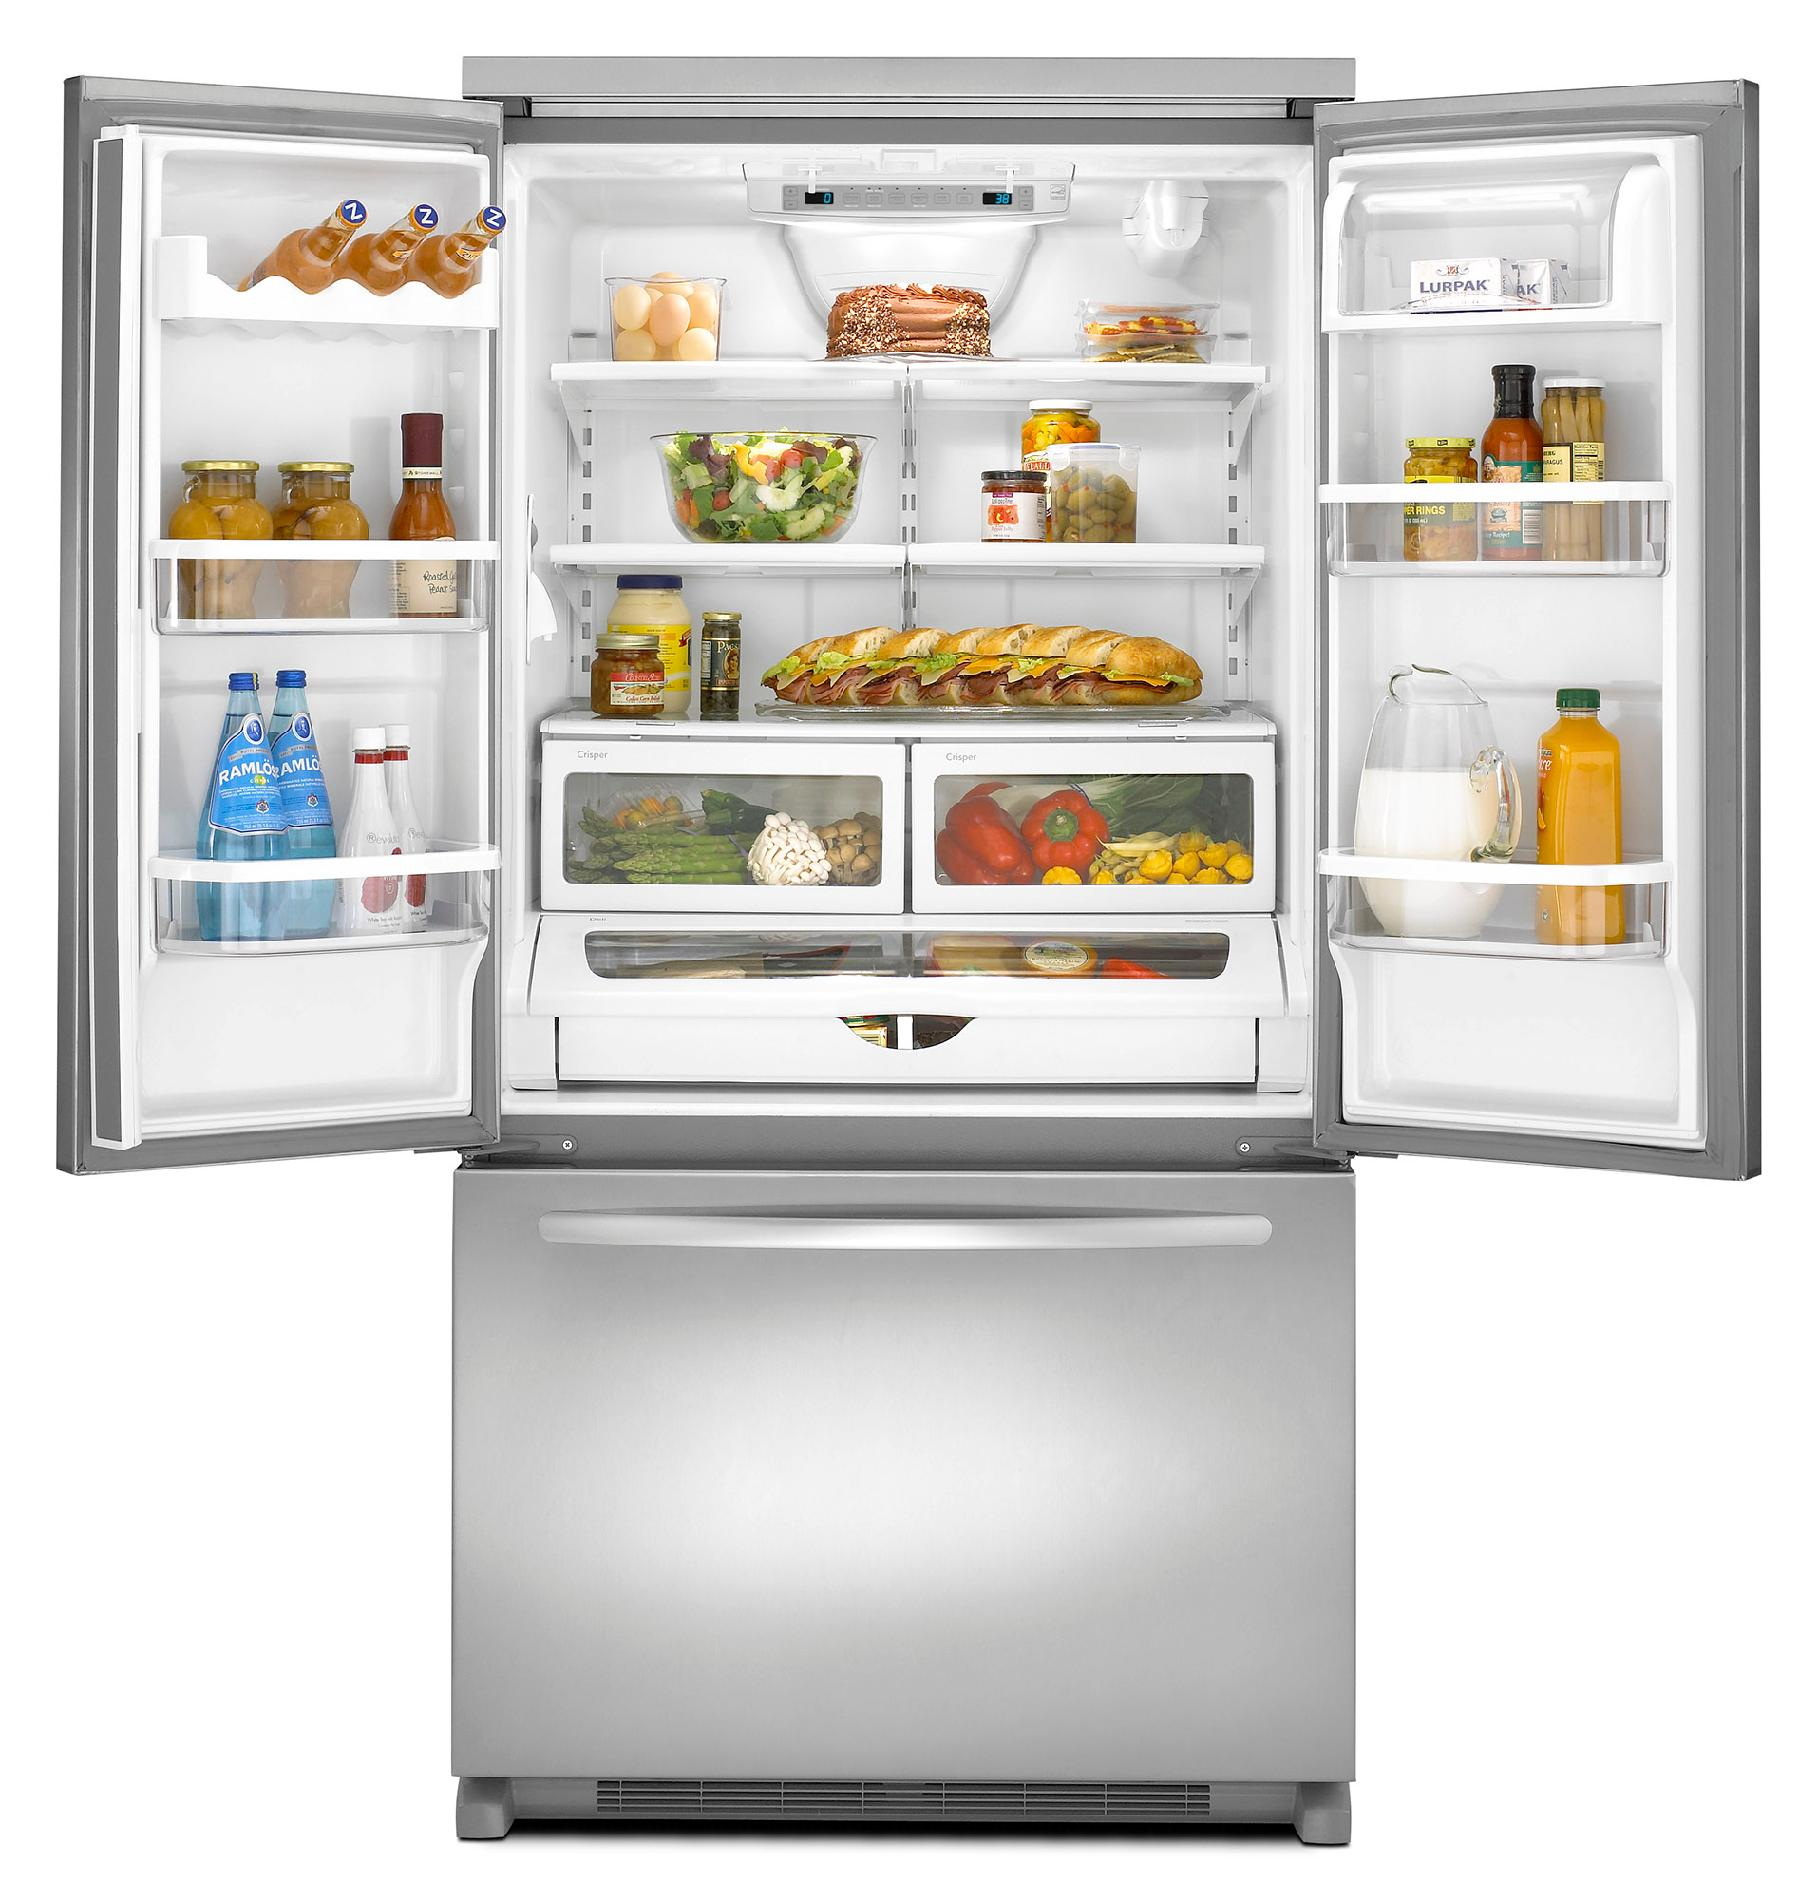 KitchenAid 19.8 cu. ft. French-Door Refrigerator w/ Interior Water Dispenser